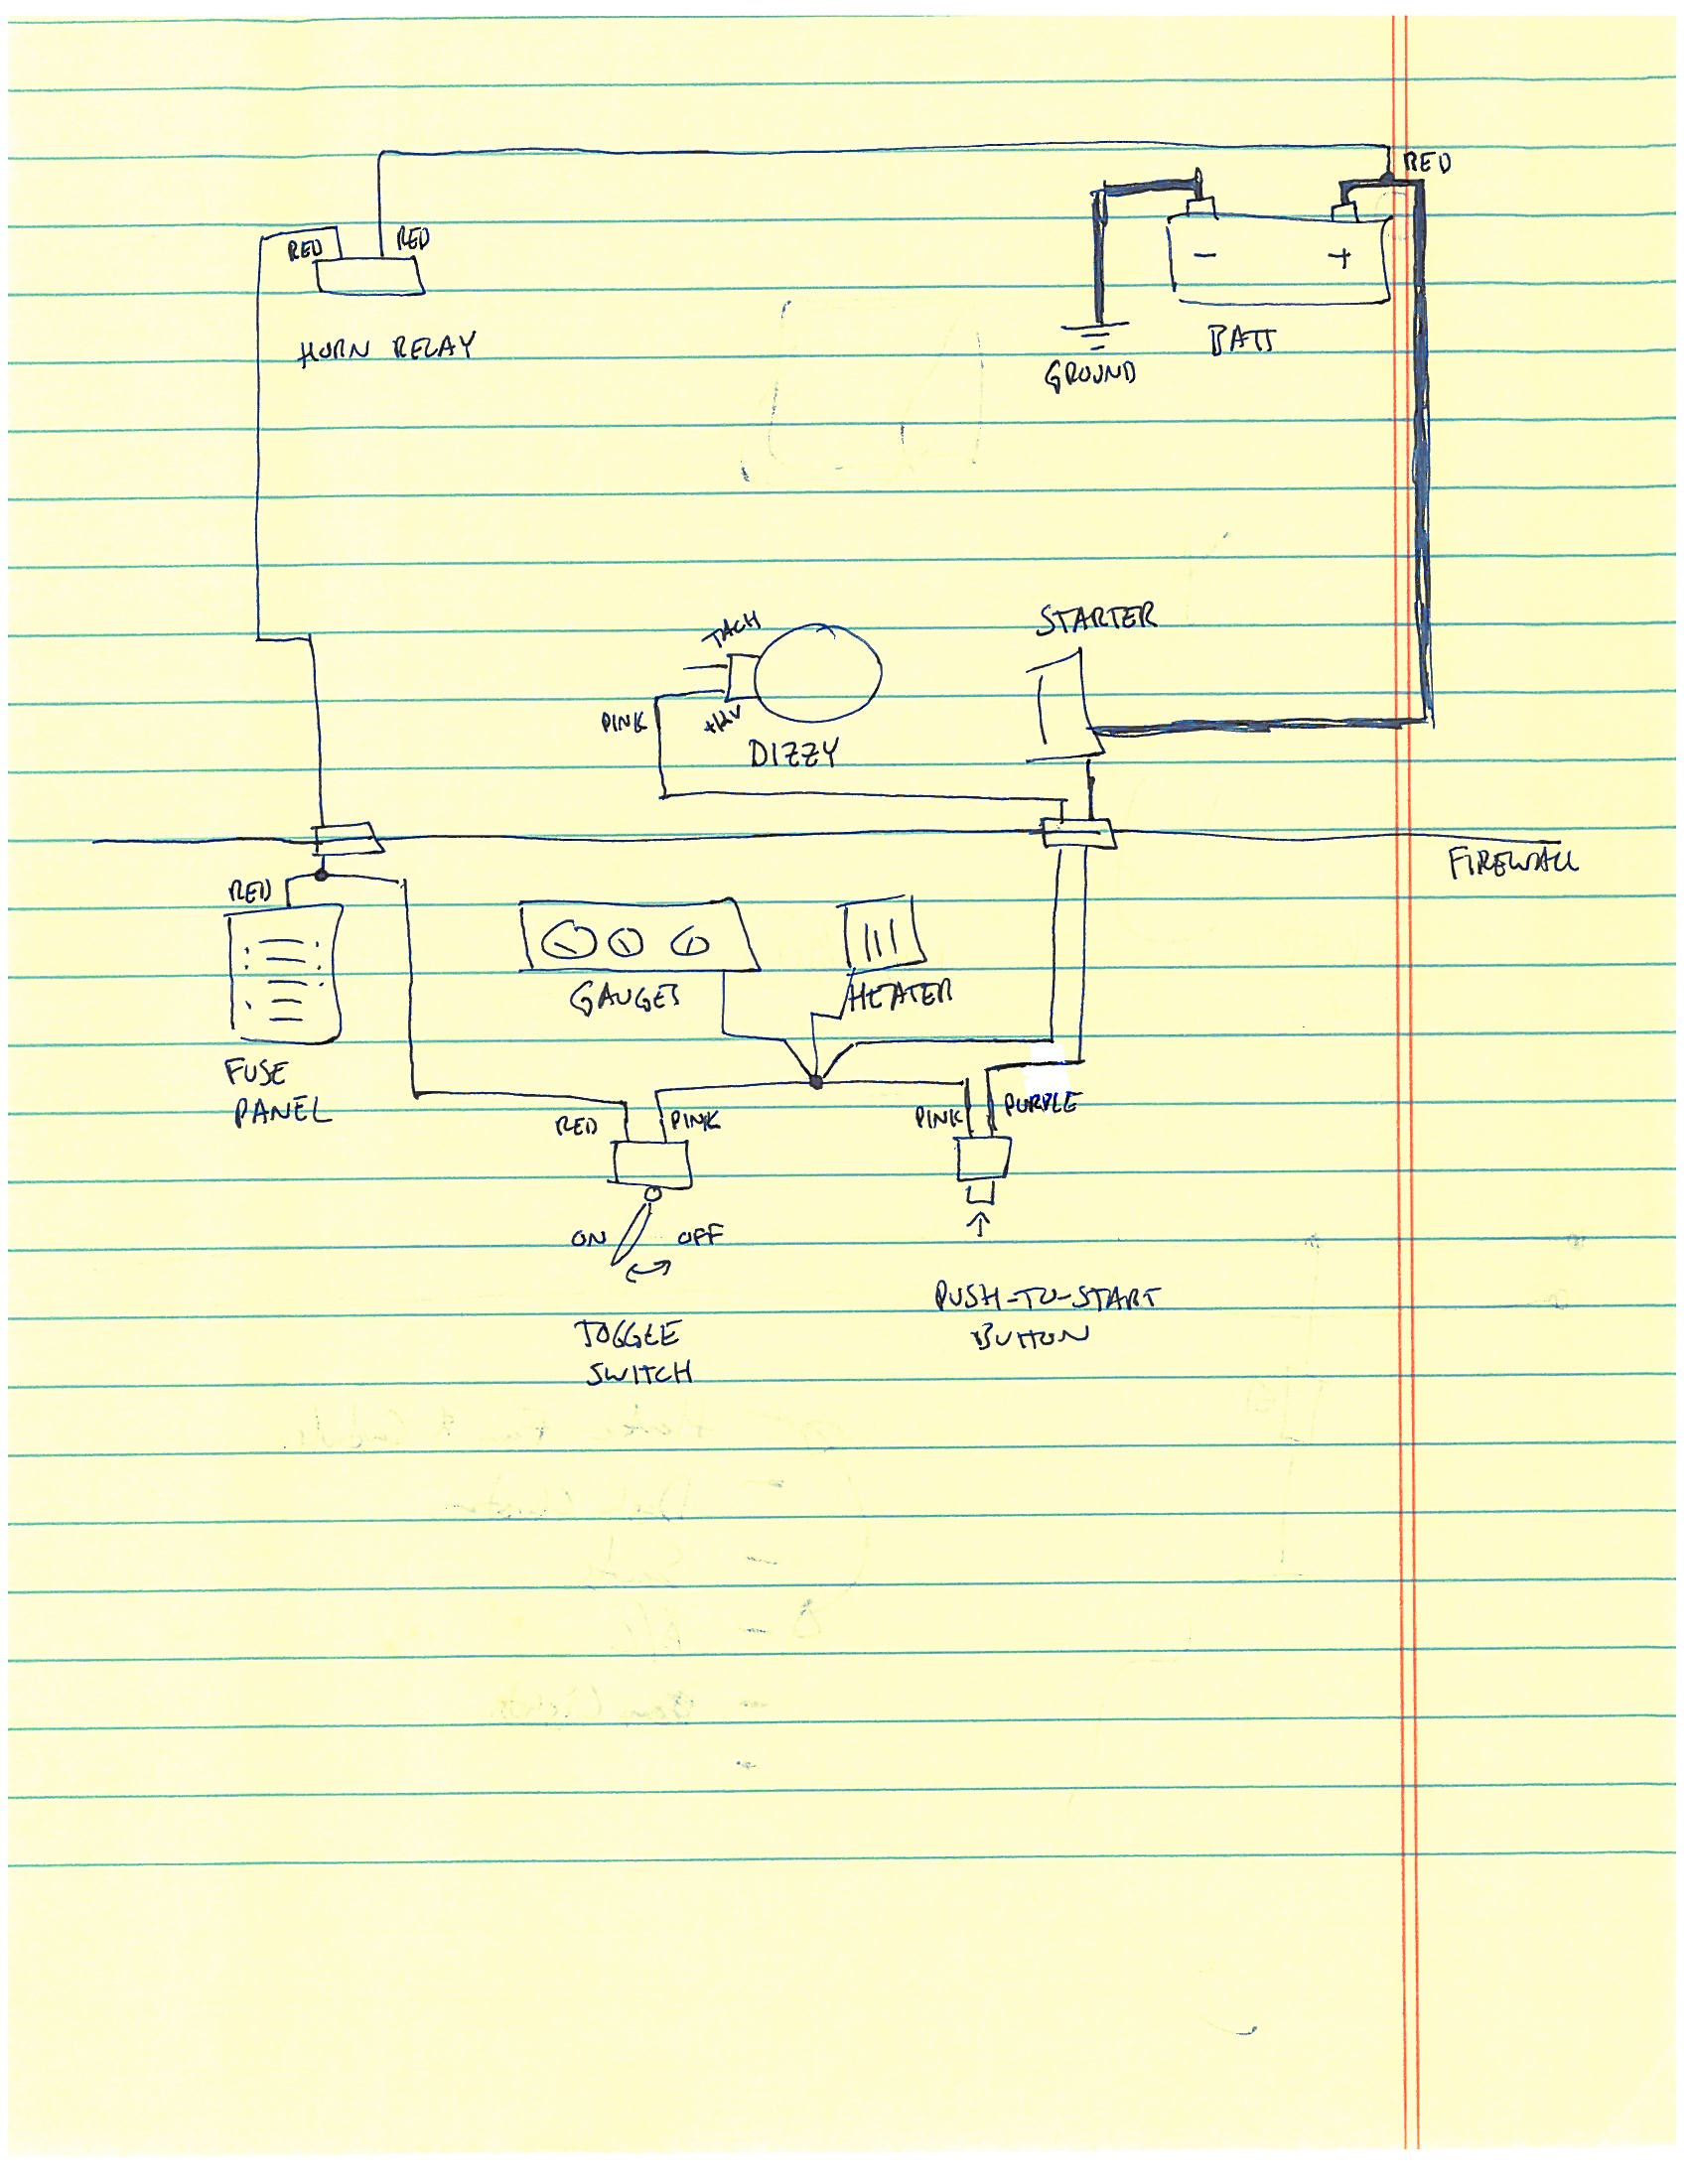 Wiring Example wiring a '63 2 speed wiper switch the 1947 present chevrolet 87 chevy truck wiring diagram at creativeand.co